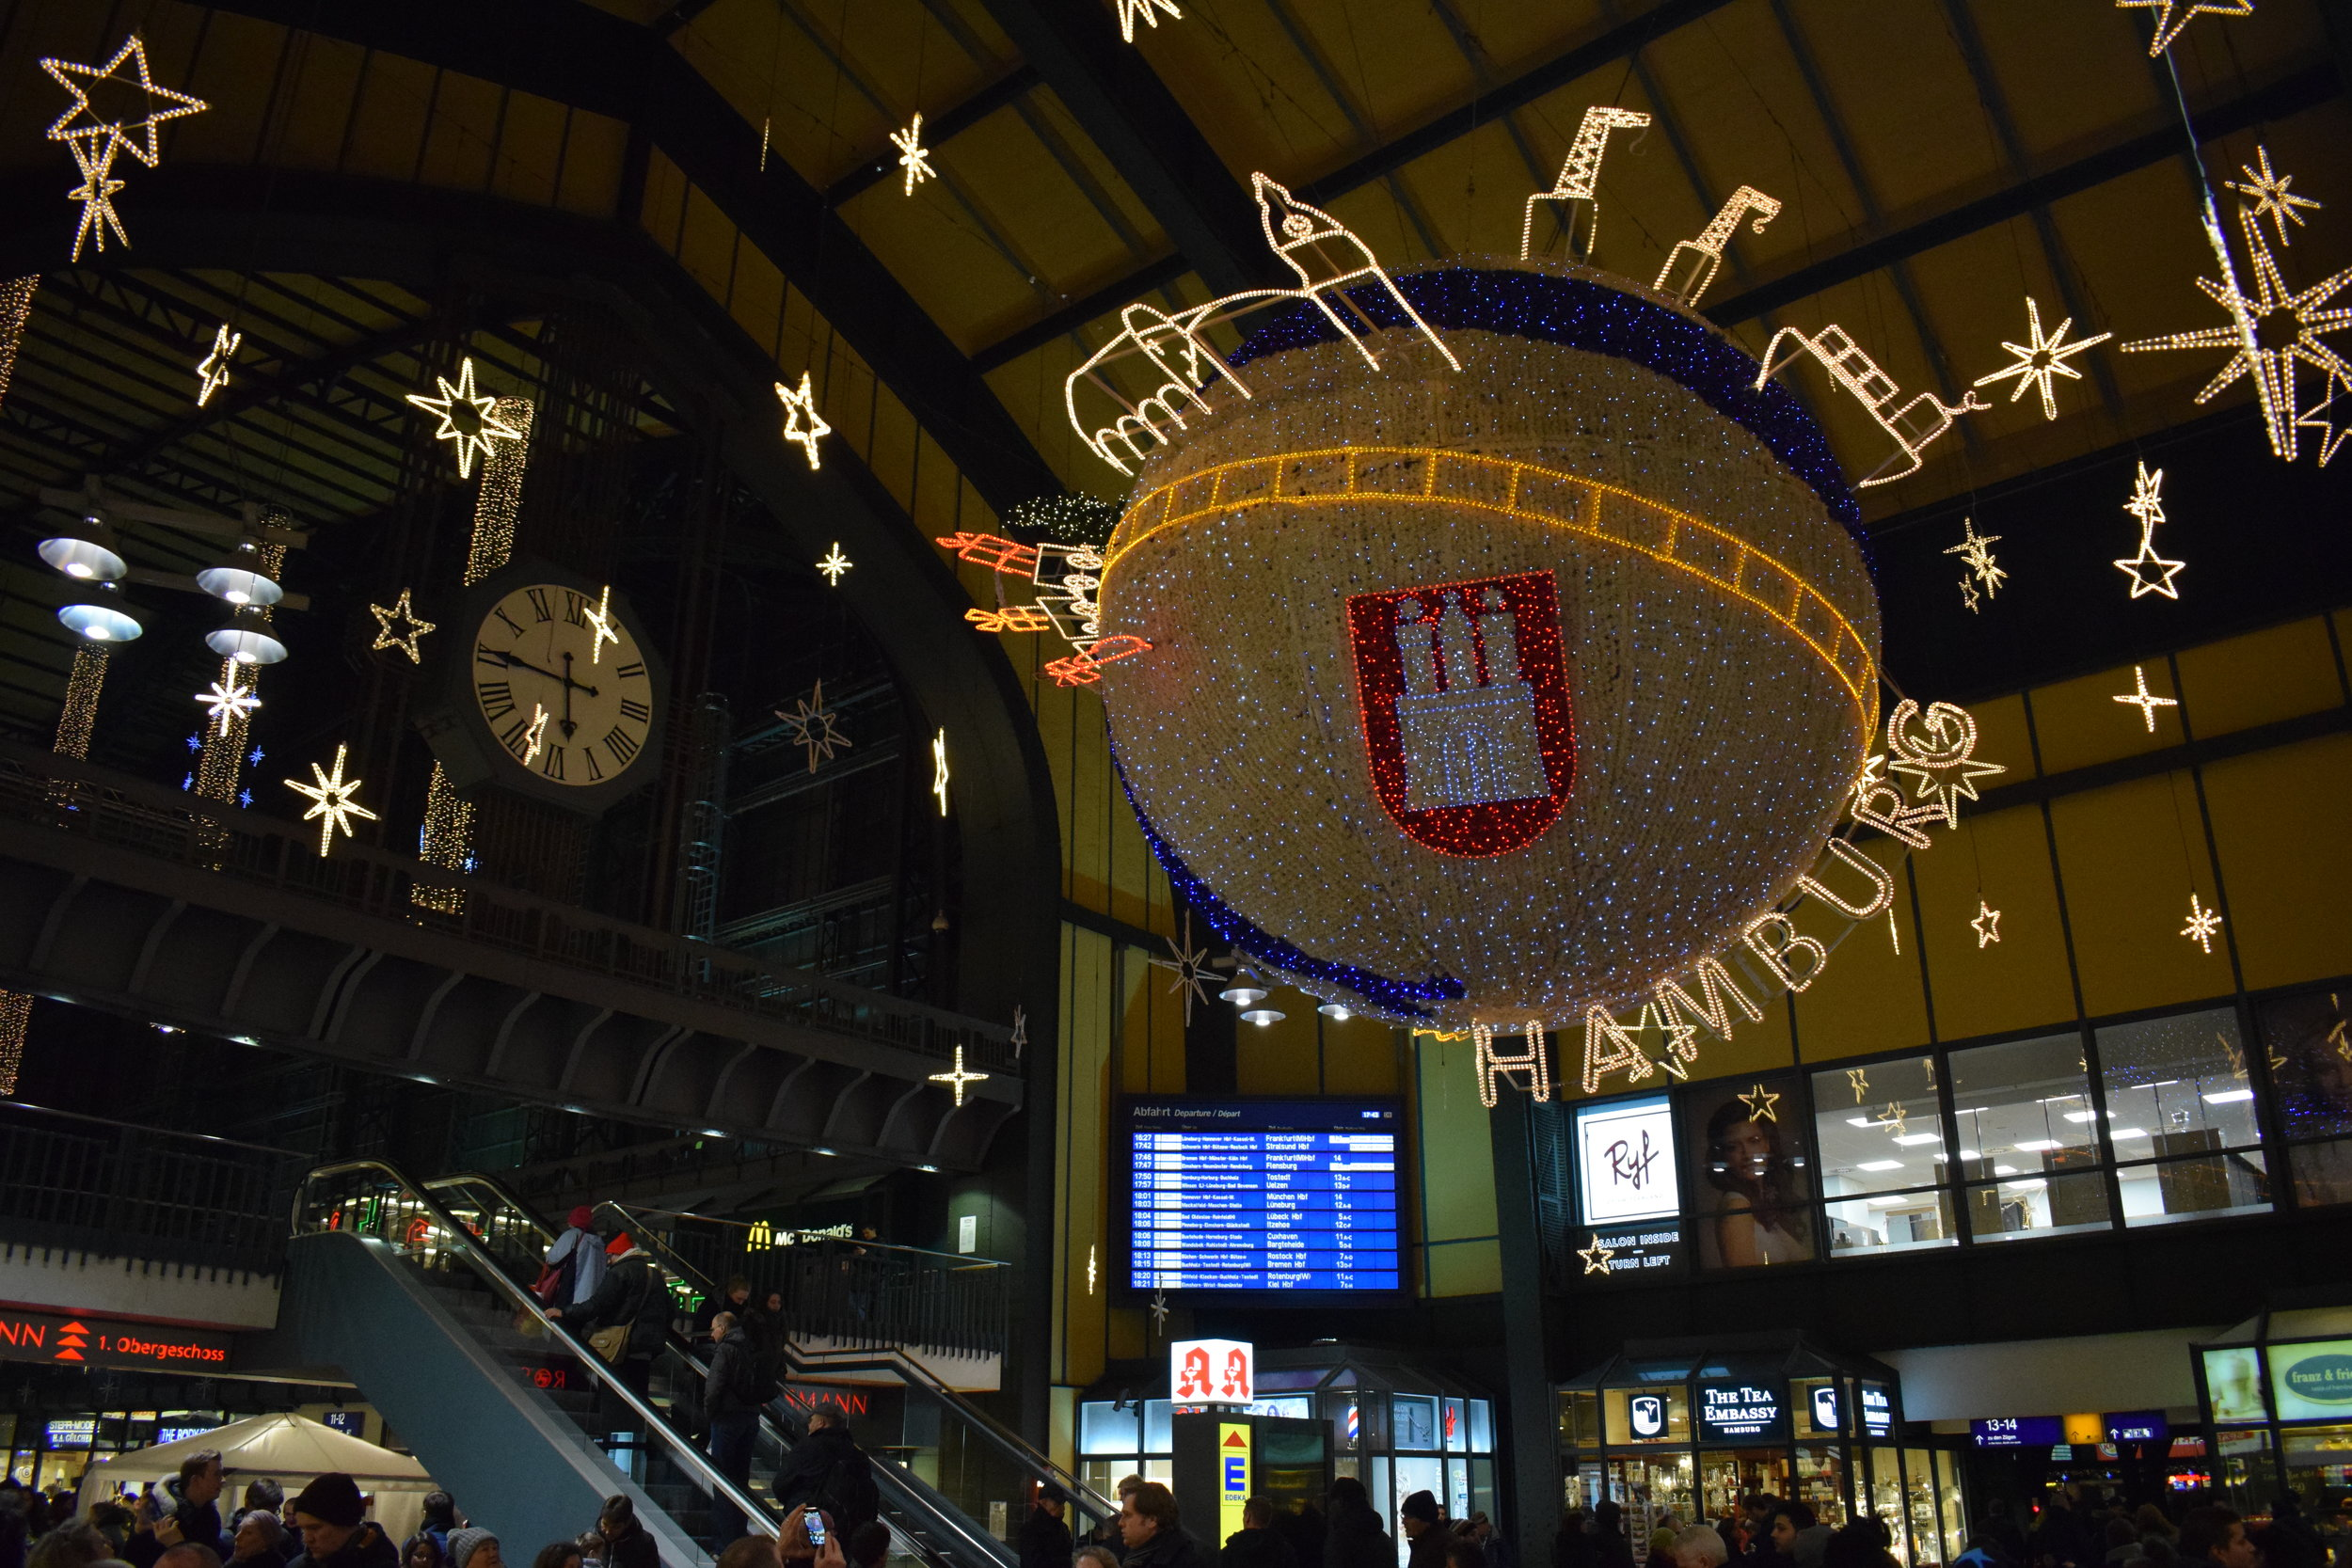 Hamburg has to be one of the world's best decorated cities at Christmas time. Here's one piece of evidence at Hamburg Hauptbahnhof (Central Station).